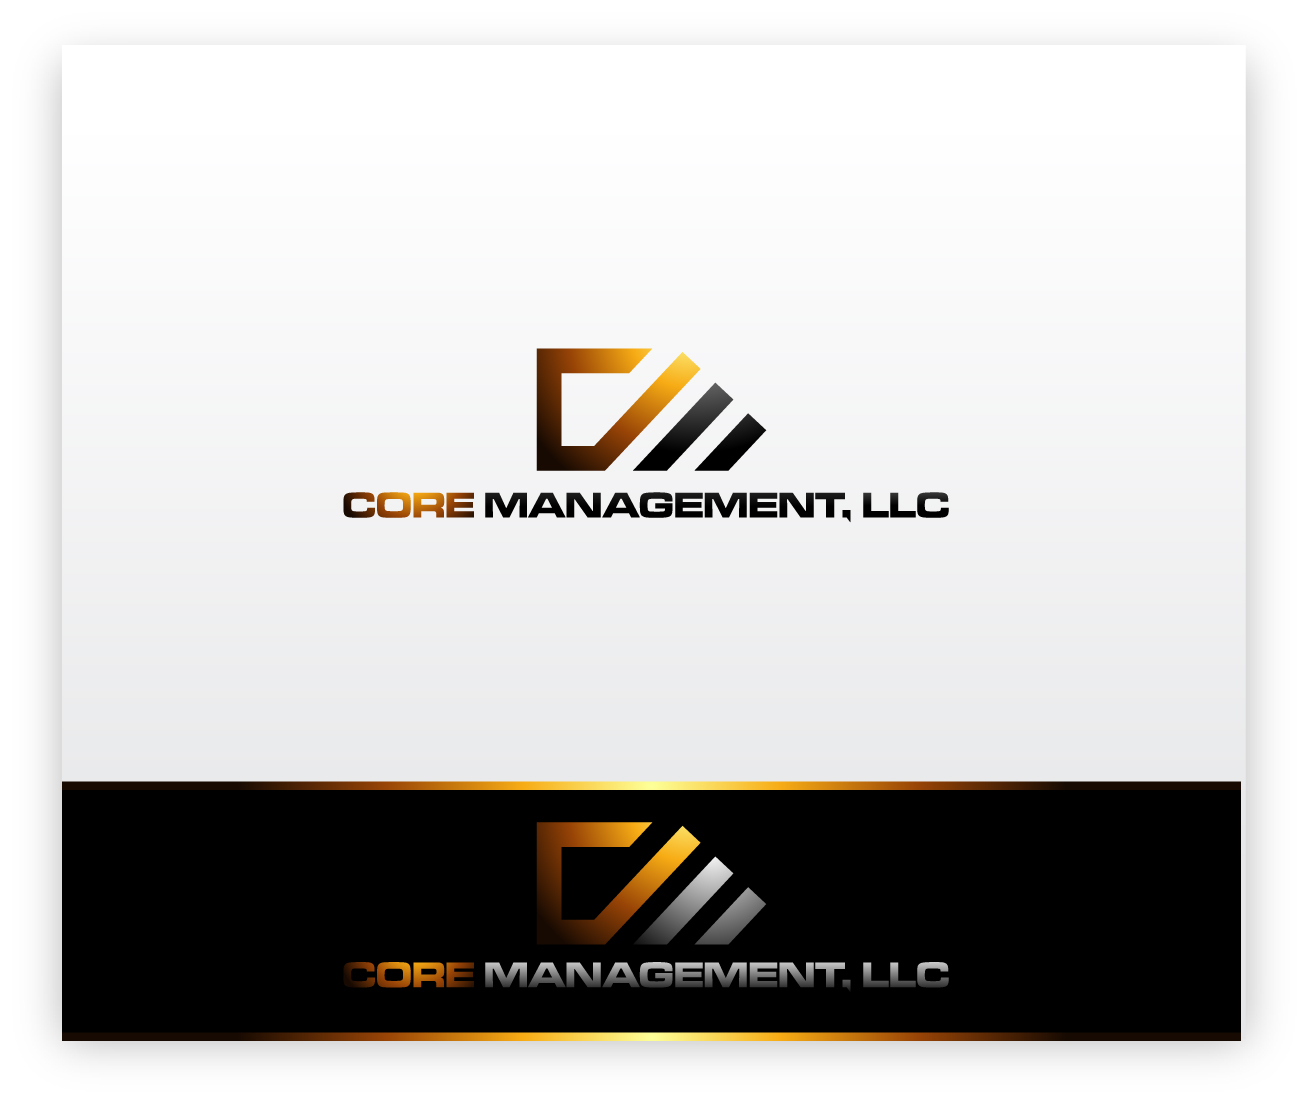 Logo Design by zoiDesign - Entry No. 40 in the Logo Design Contest Creative Logo Design for CORE Management, LLC.